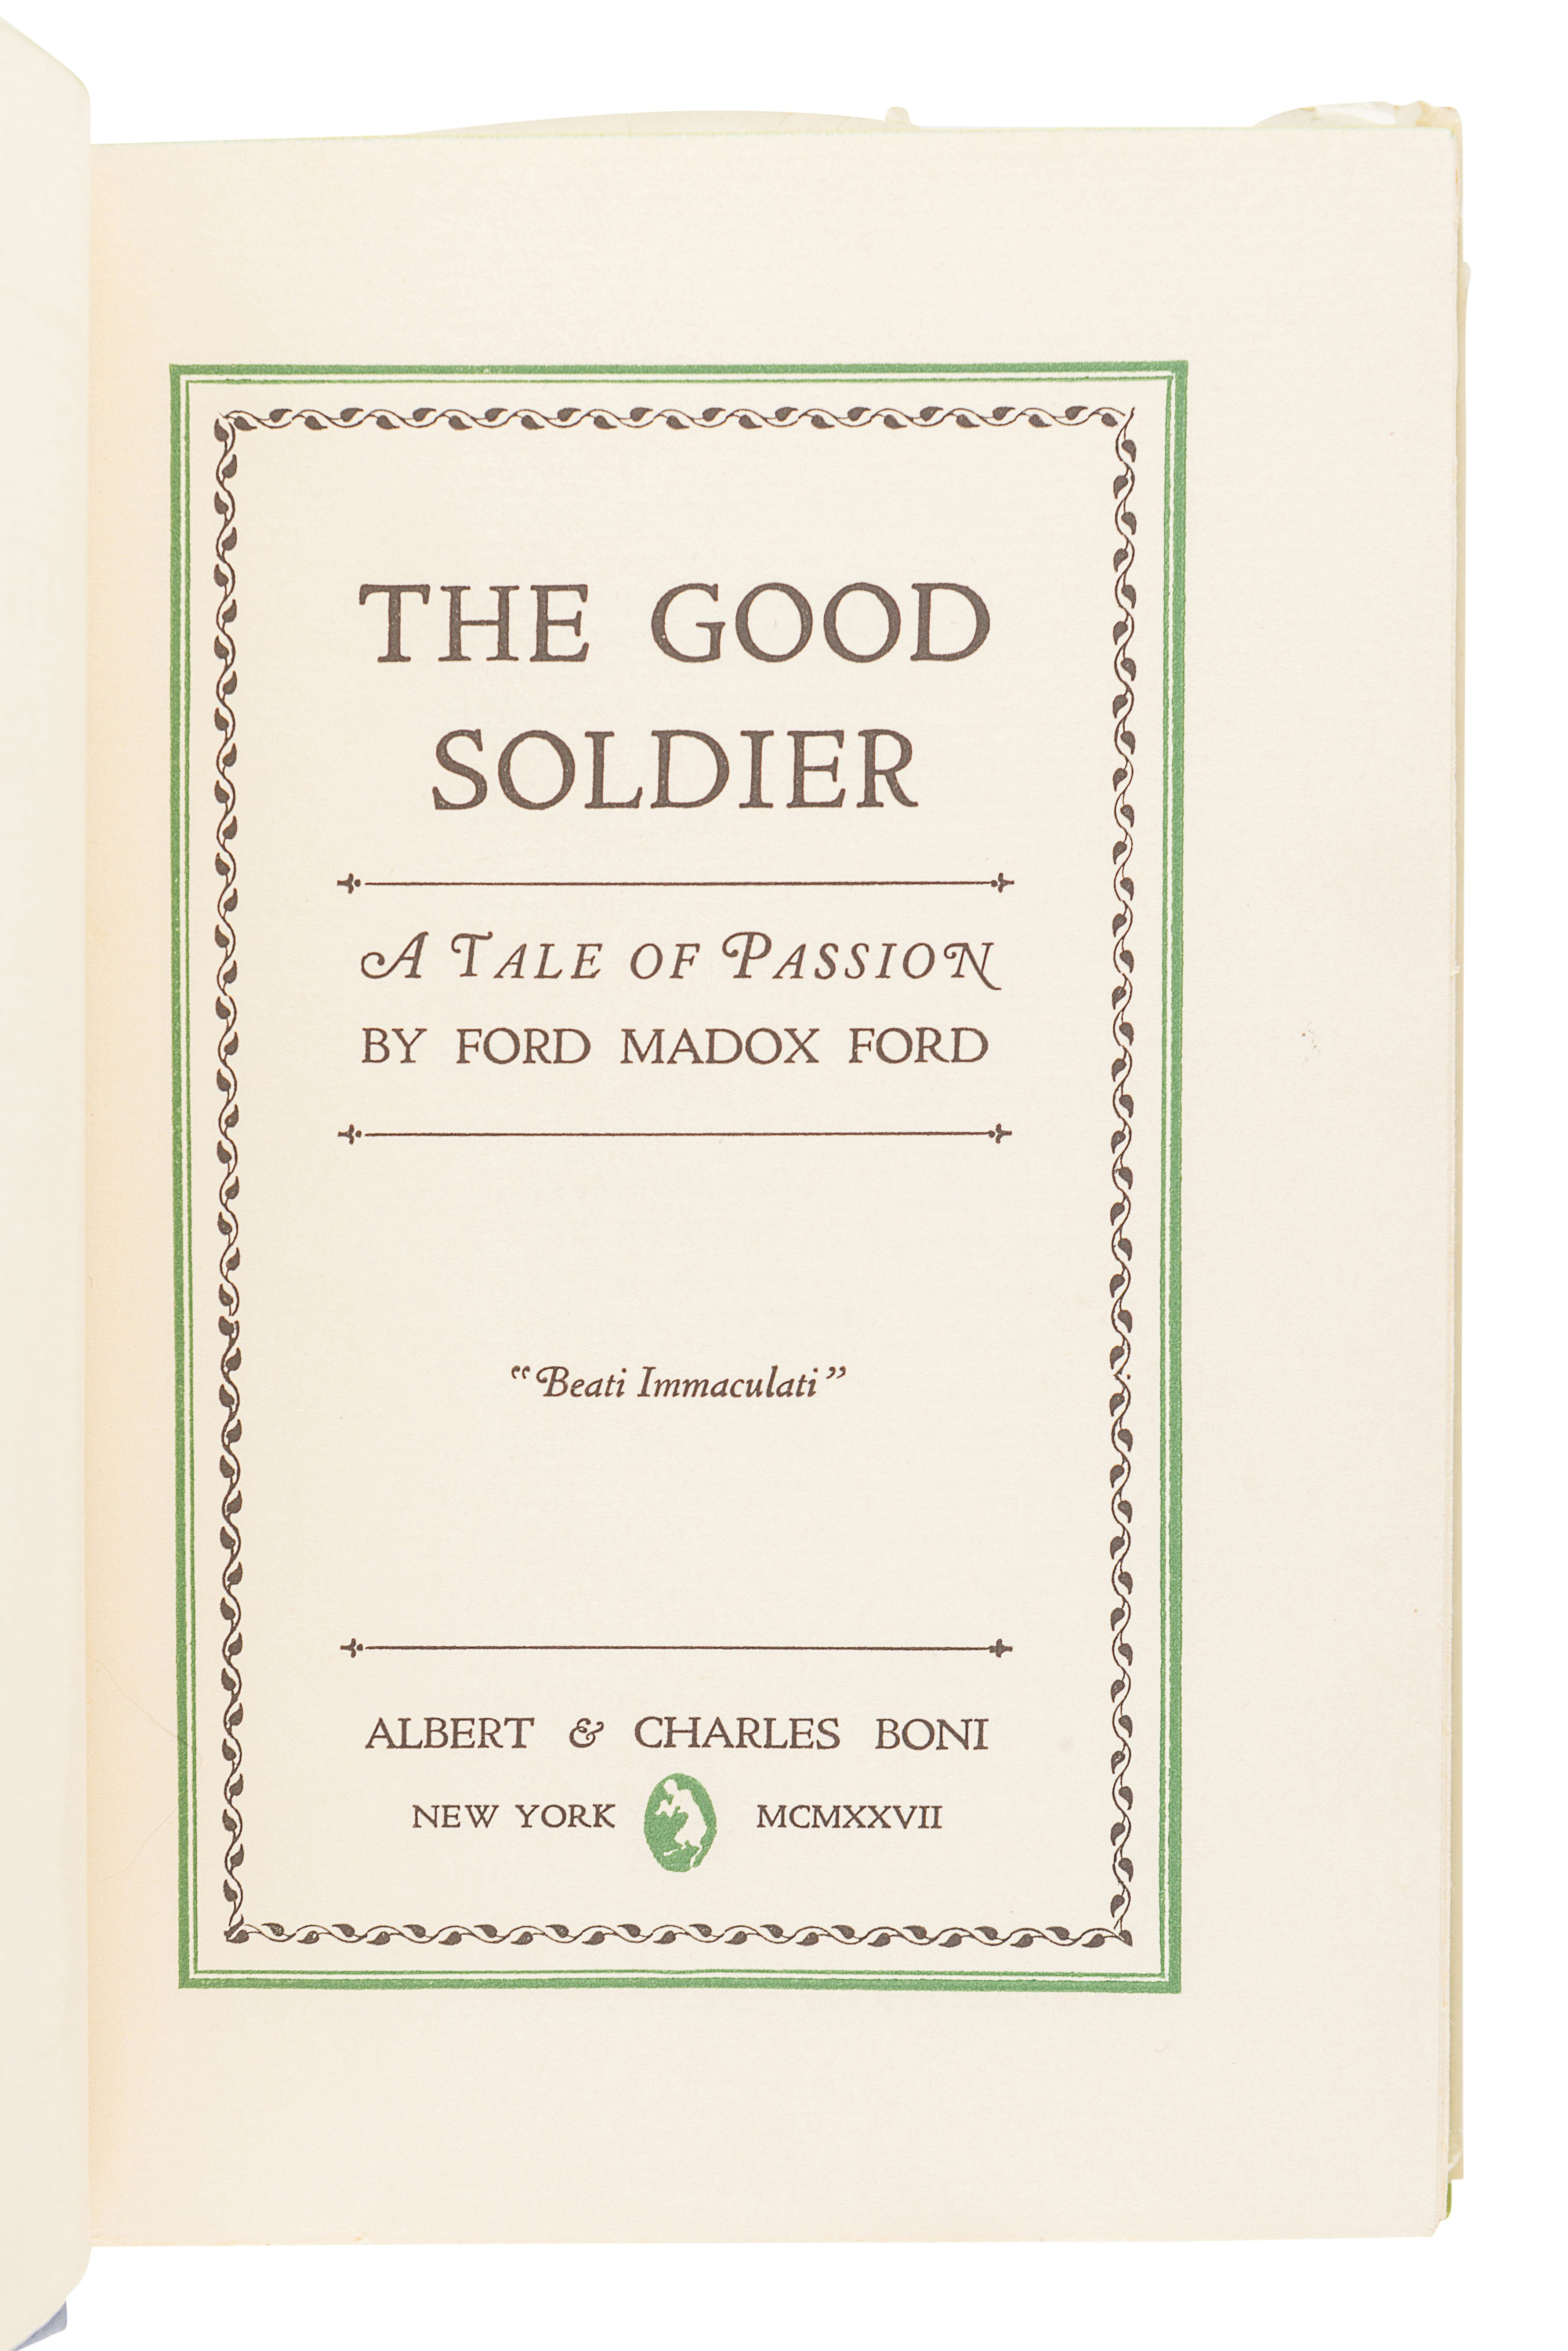 FORD, Ford Madox (1873-1939).The Good Soldier. New York: Albert and Charles Boni, 1927. - Image 2 of 3